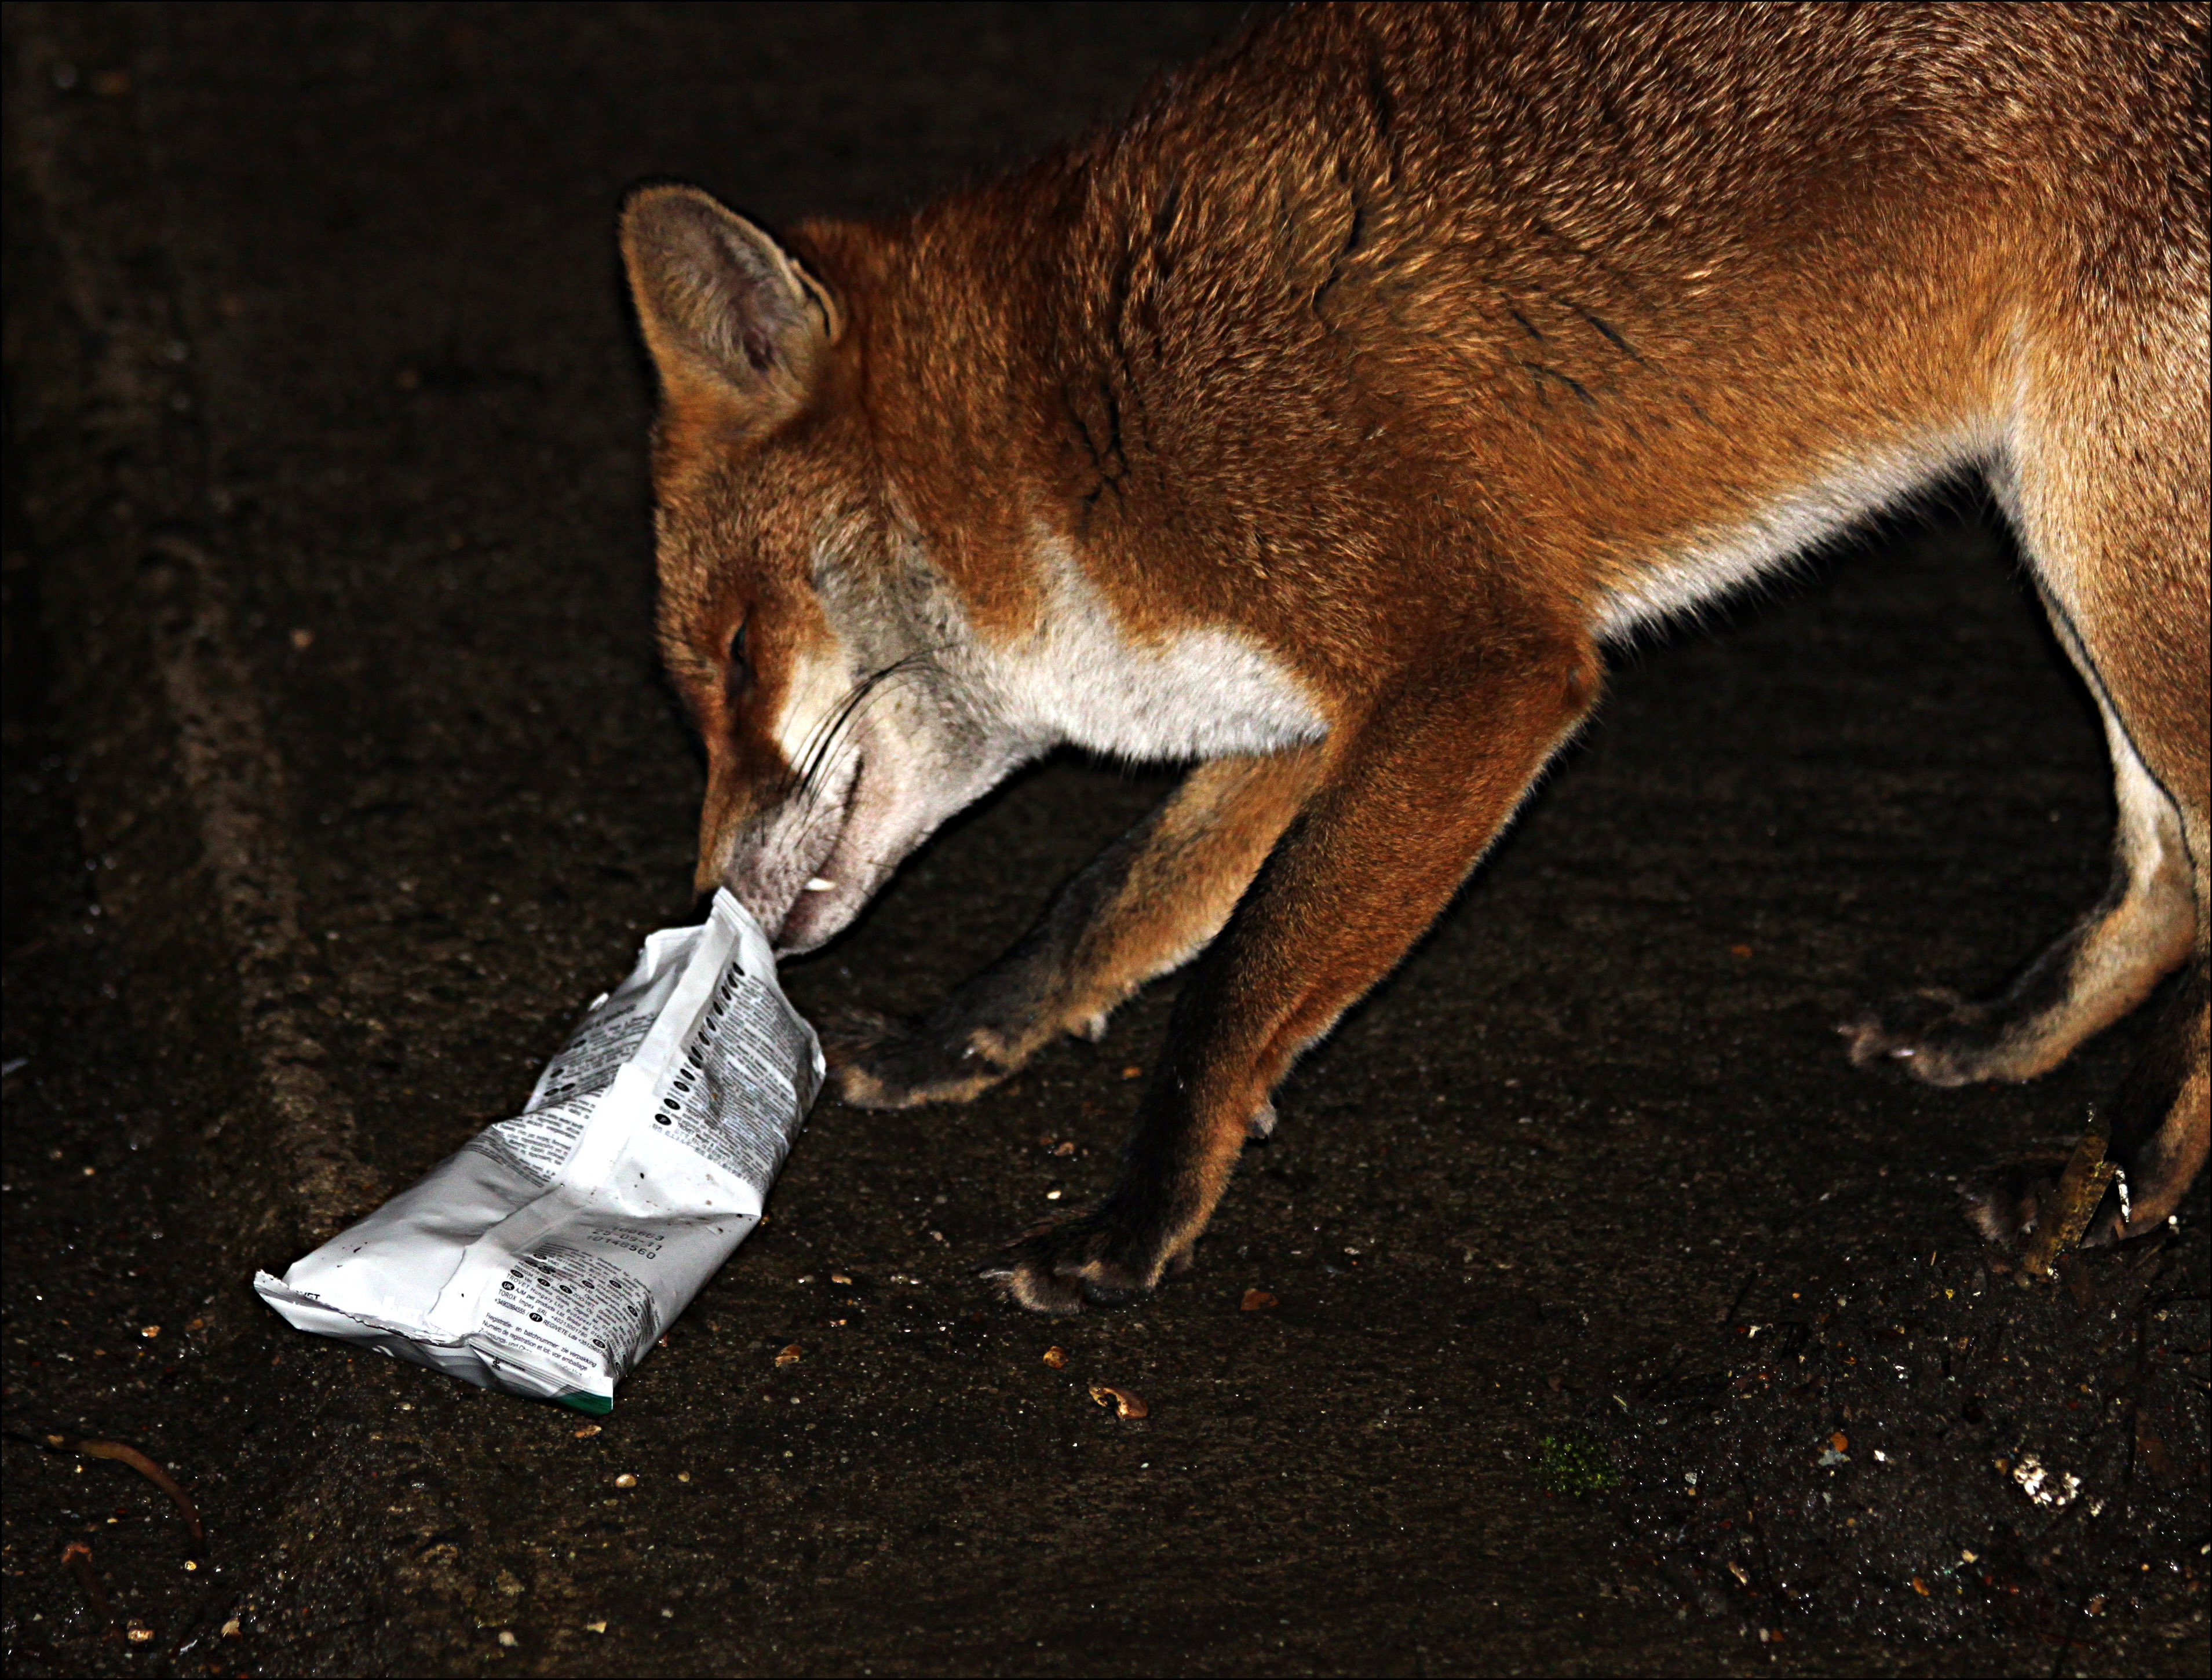 A fox eats biscuits from inside a packet. Dorset, England. Photo taken on January 23, 2012.